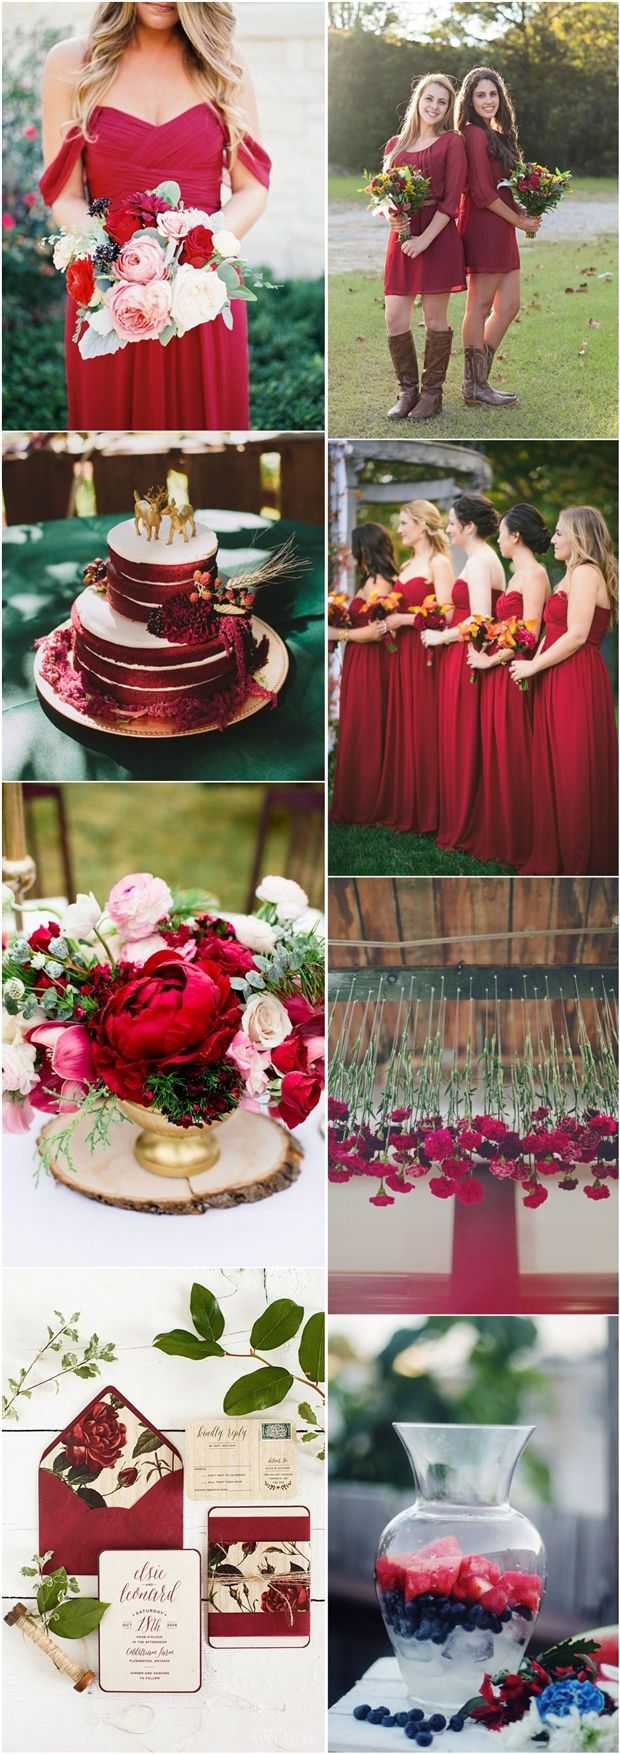 red wedding color ideas- fall winter wedding theme ideas